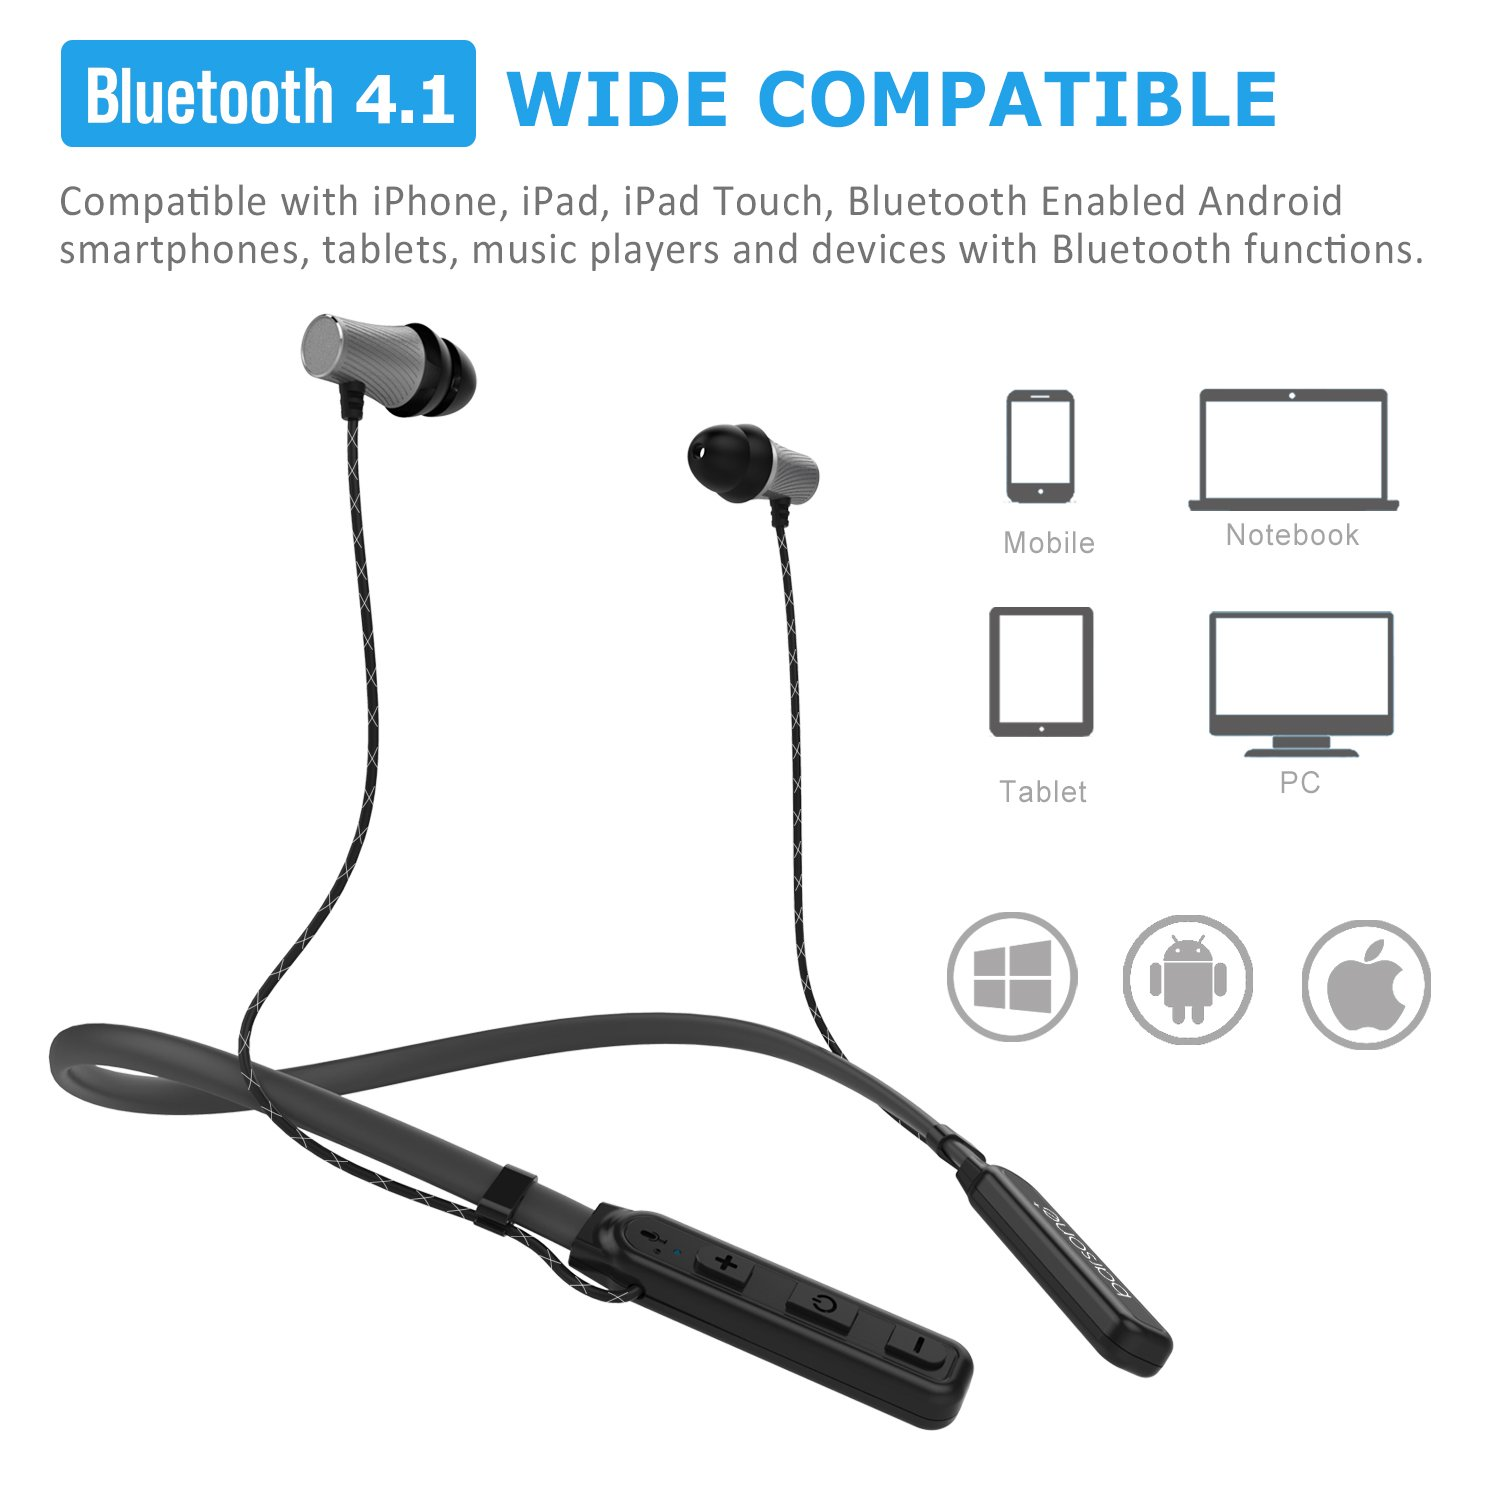 Barsone Neck Band Wireless Bluetooth Headset, Bluetooth 4.1 Headphones Stereo Magnetic Attraction Earbuds Sweat-Proof Sports In Ear Headphones with Microphone for iPhone,Samsung HTC and Most Other Bluetooth Bluetooth Devices (Gray)